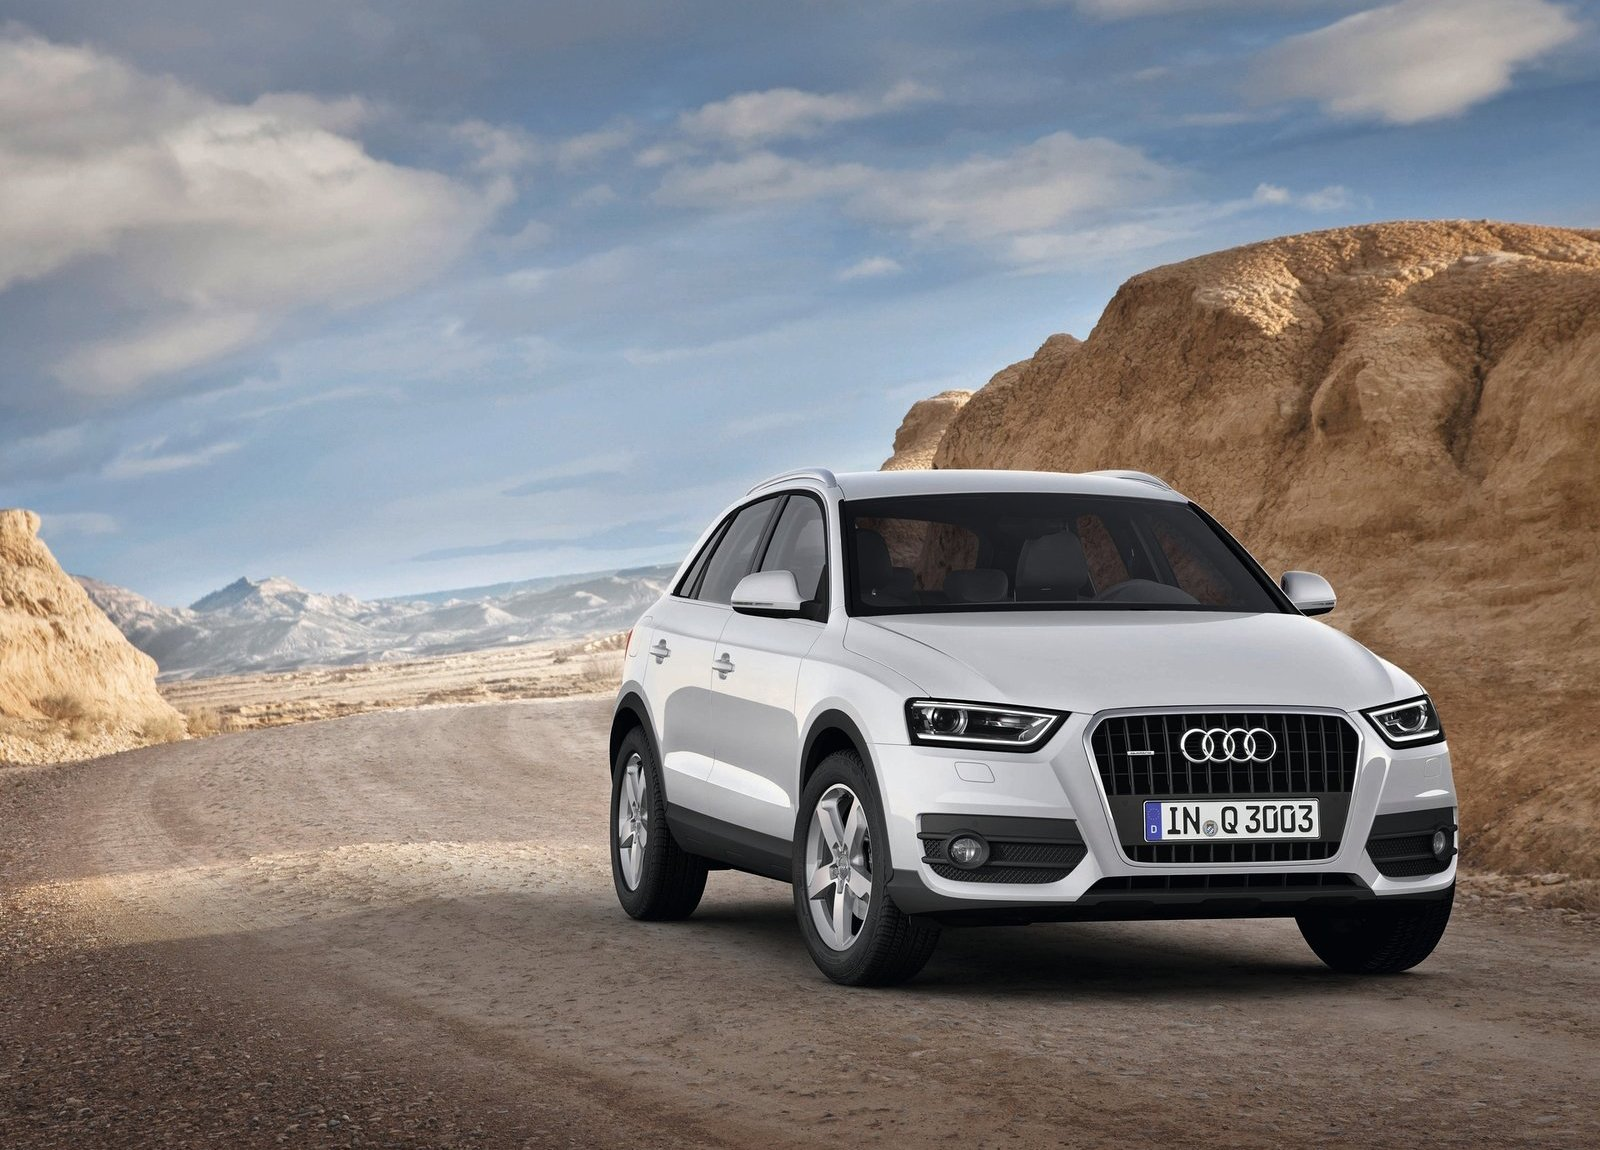 Latest Audi Q3 Hd Wallpapers The World Of Audi Free Download